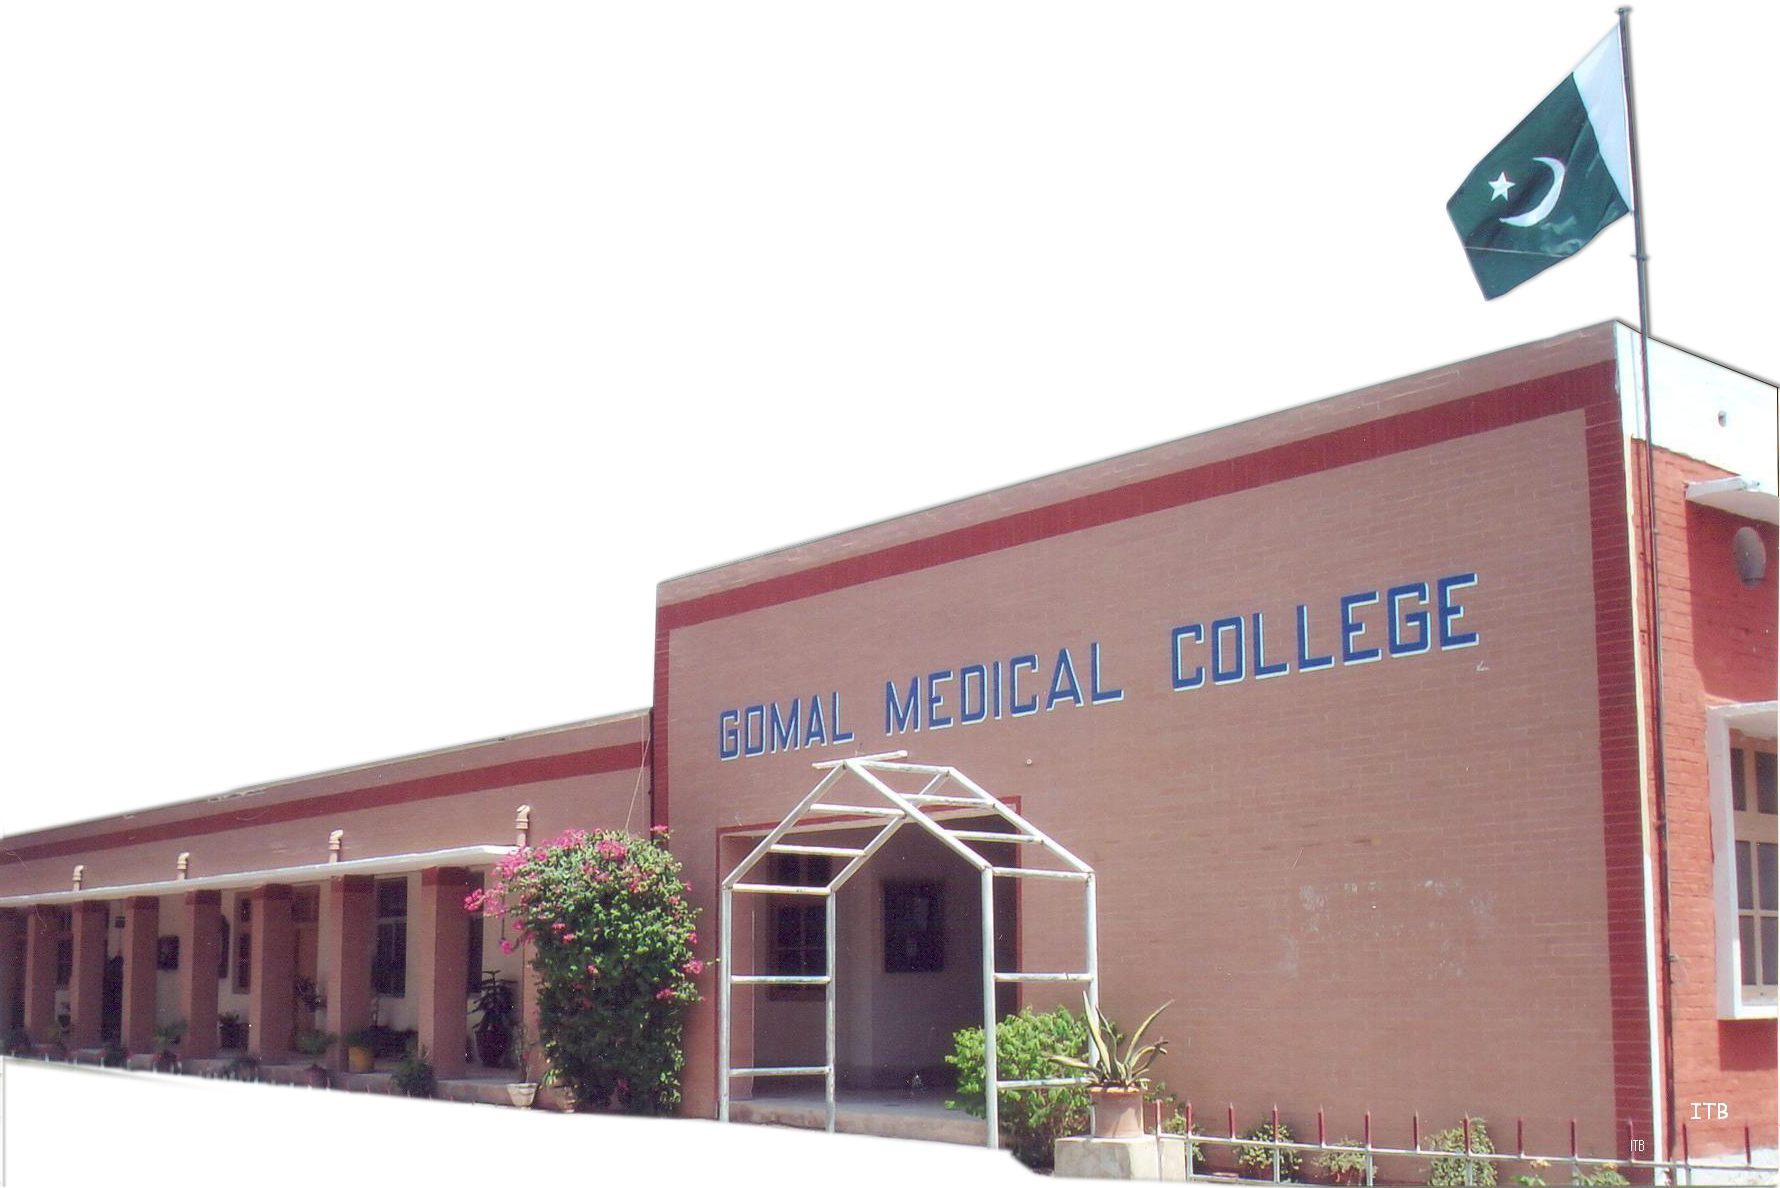 Gomal Medical College MBBS Admission 2018 Form, Schedule, Eligibility